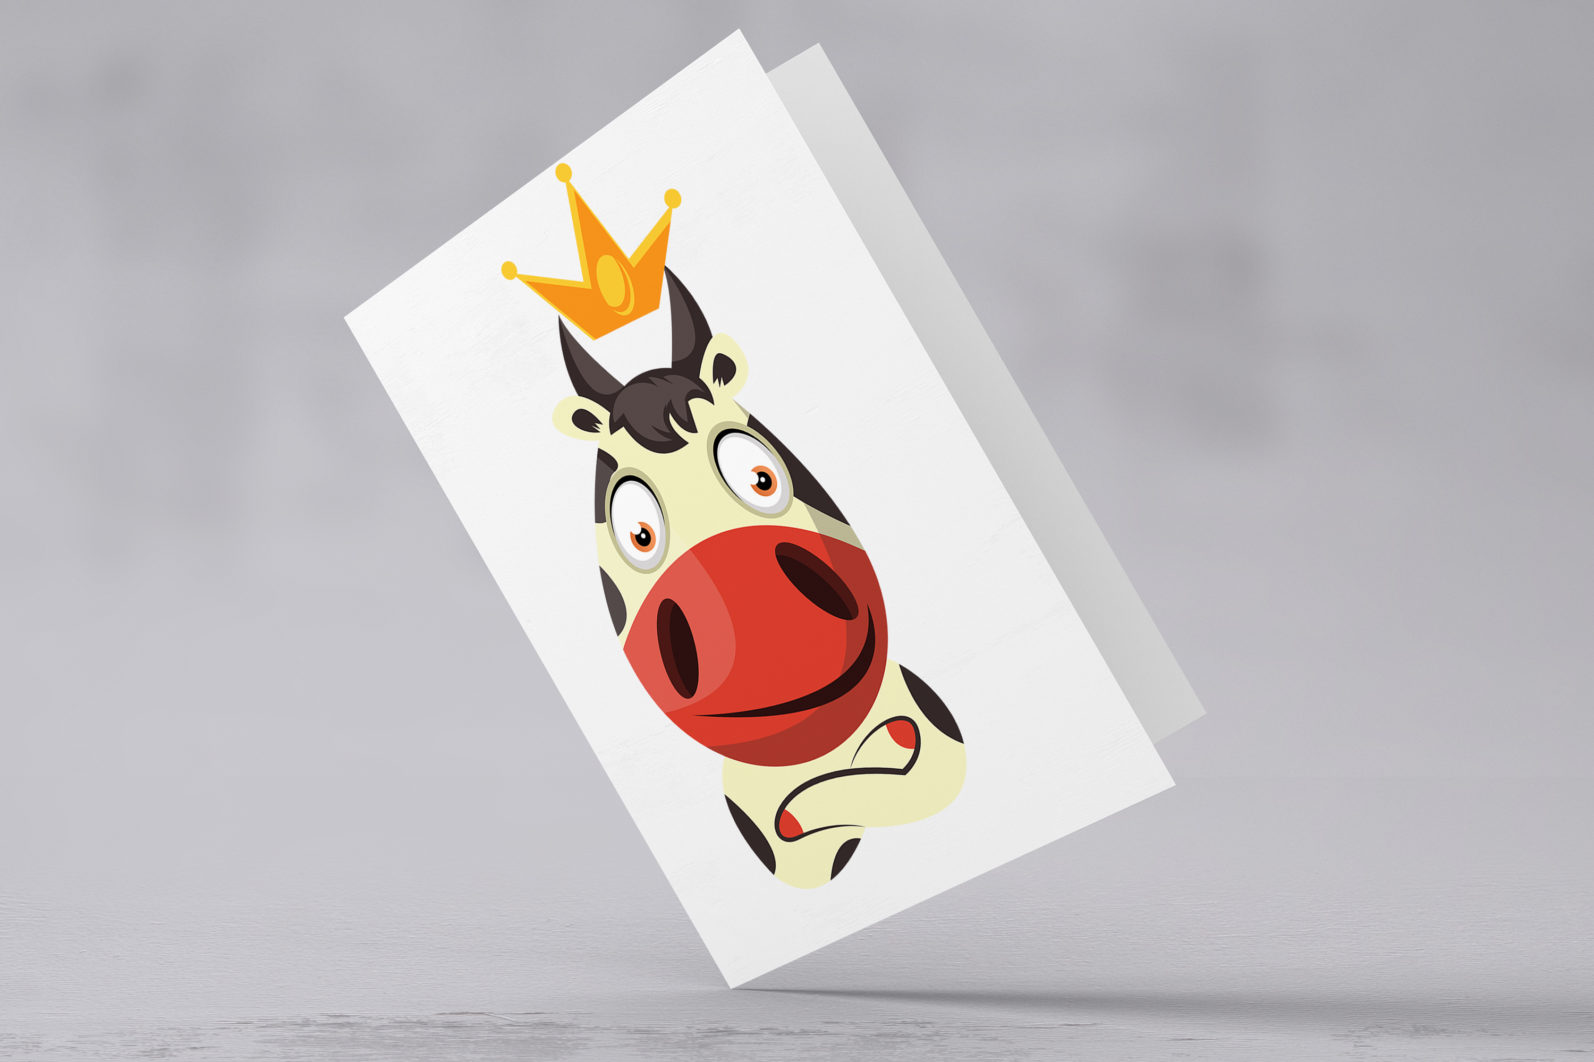 12x Cow Emotion Collection illustration. - 71 Cow CARD SECONDARY scaled -